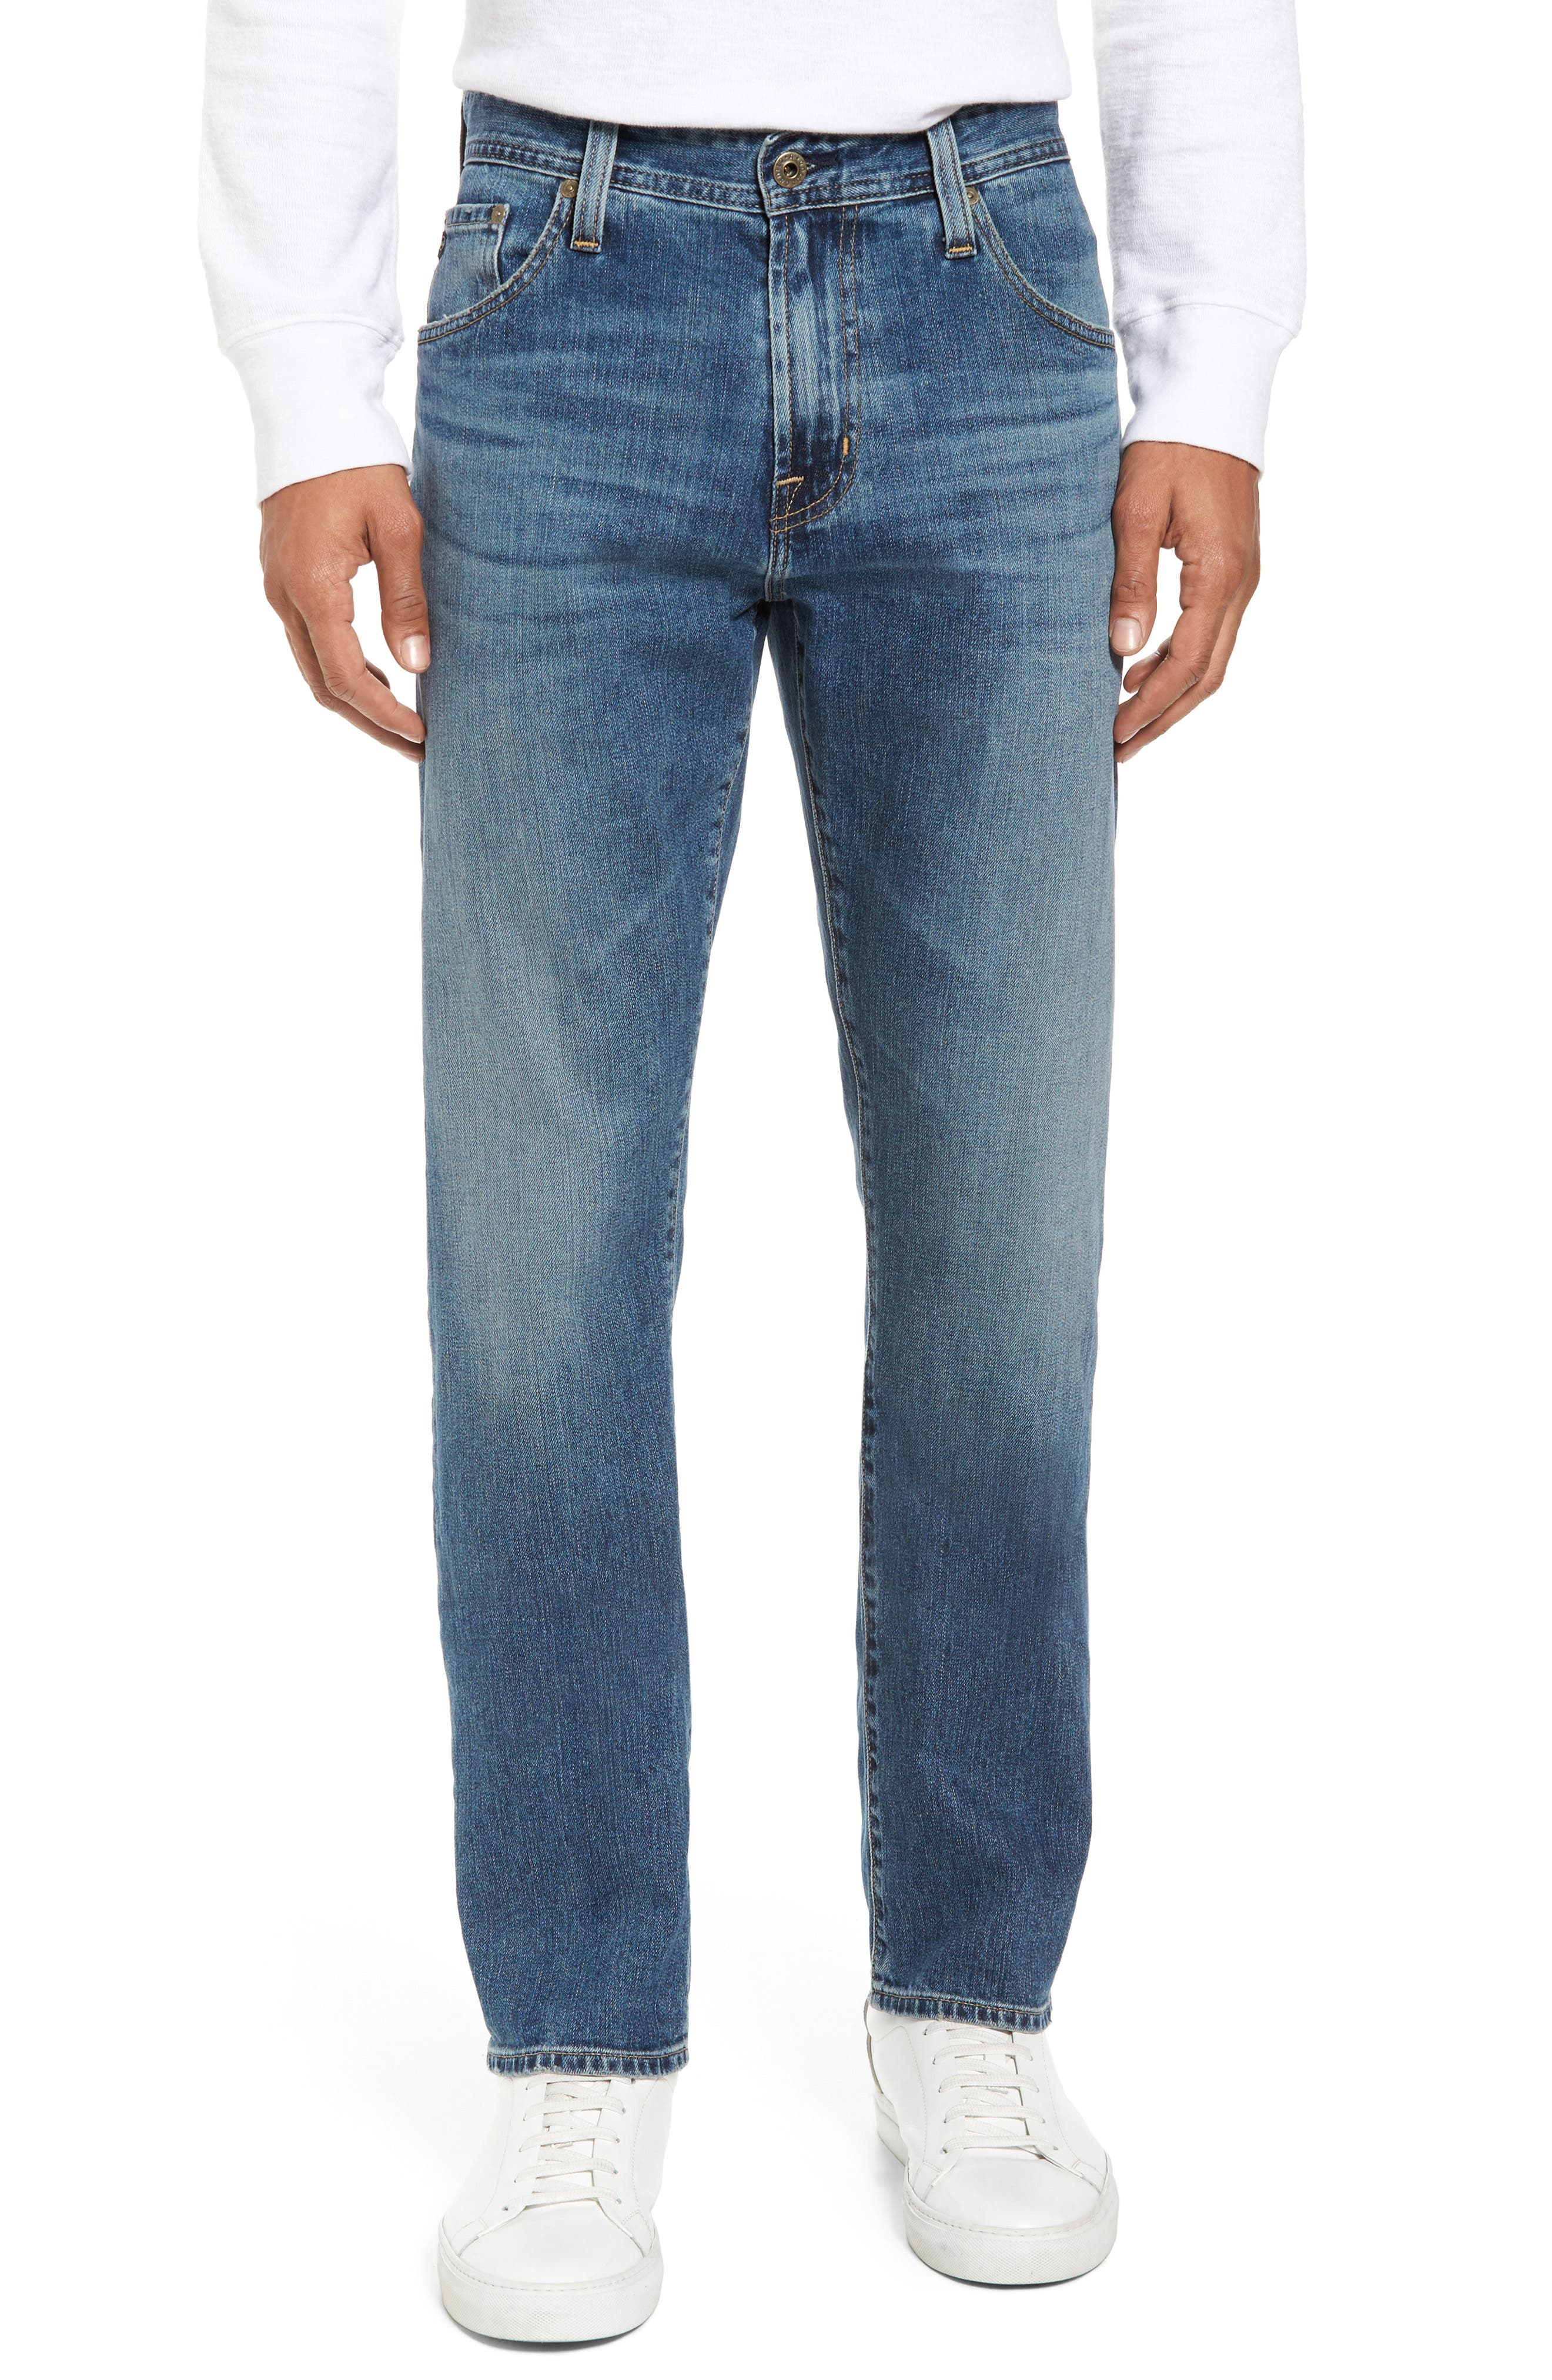 Ives Straight Fit Jeans,                             Main thumbnail 1, color,                             419